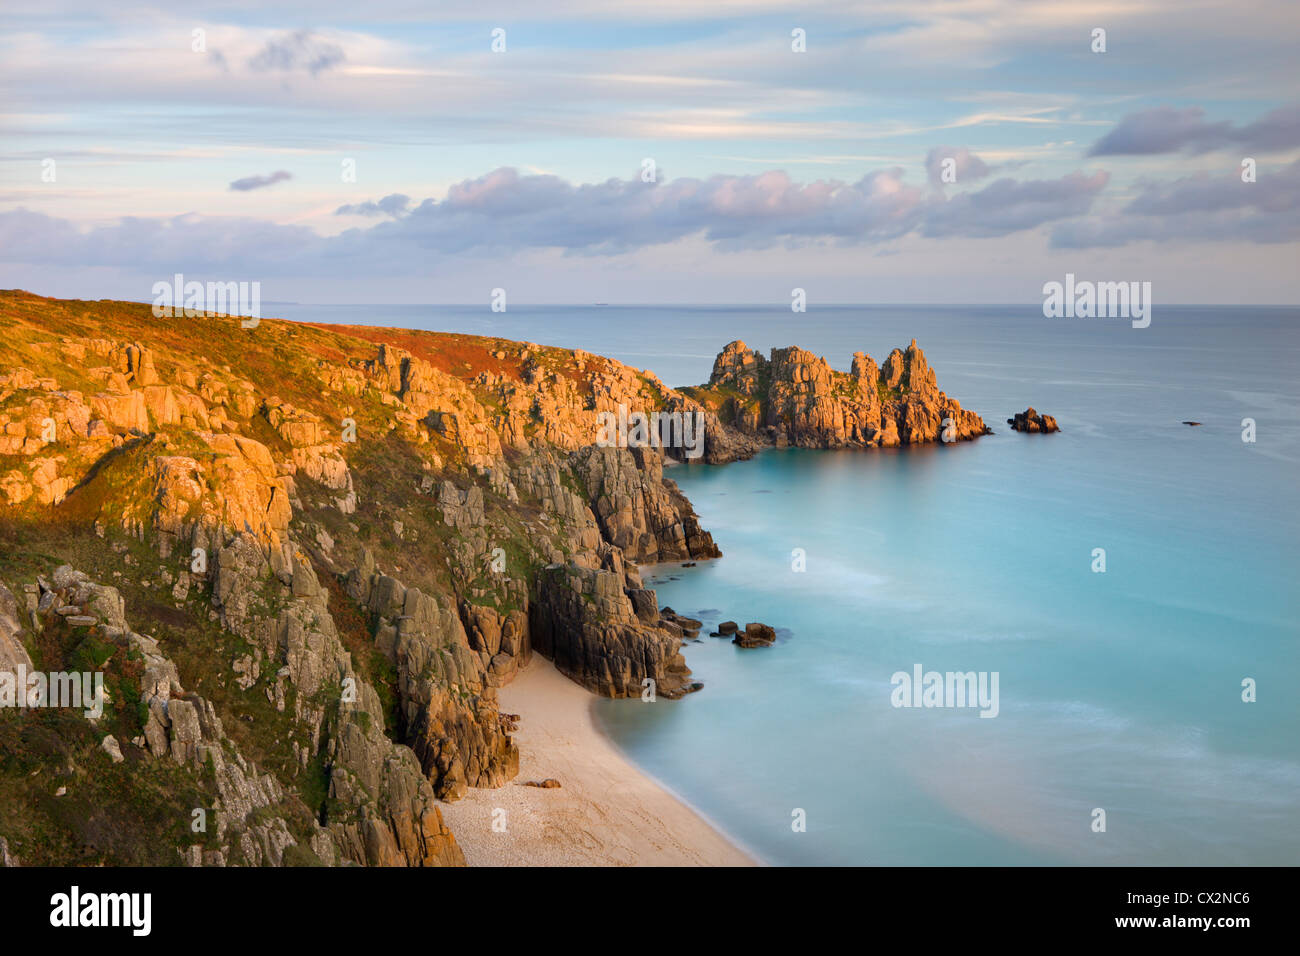 Pednvounder Beach from Treen Cliff, looking towards Logan Rock, Porthcurno, Cornwall, England. Autumn (October) - Stock Image